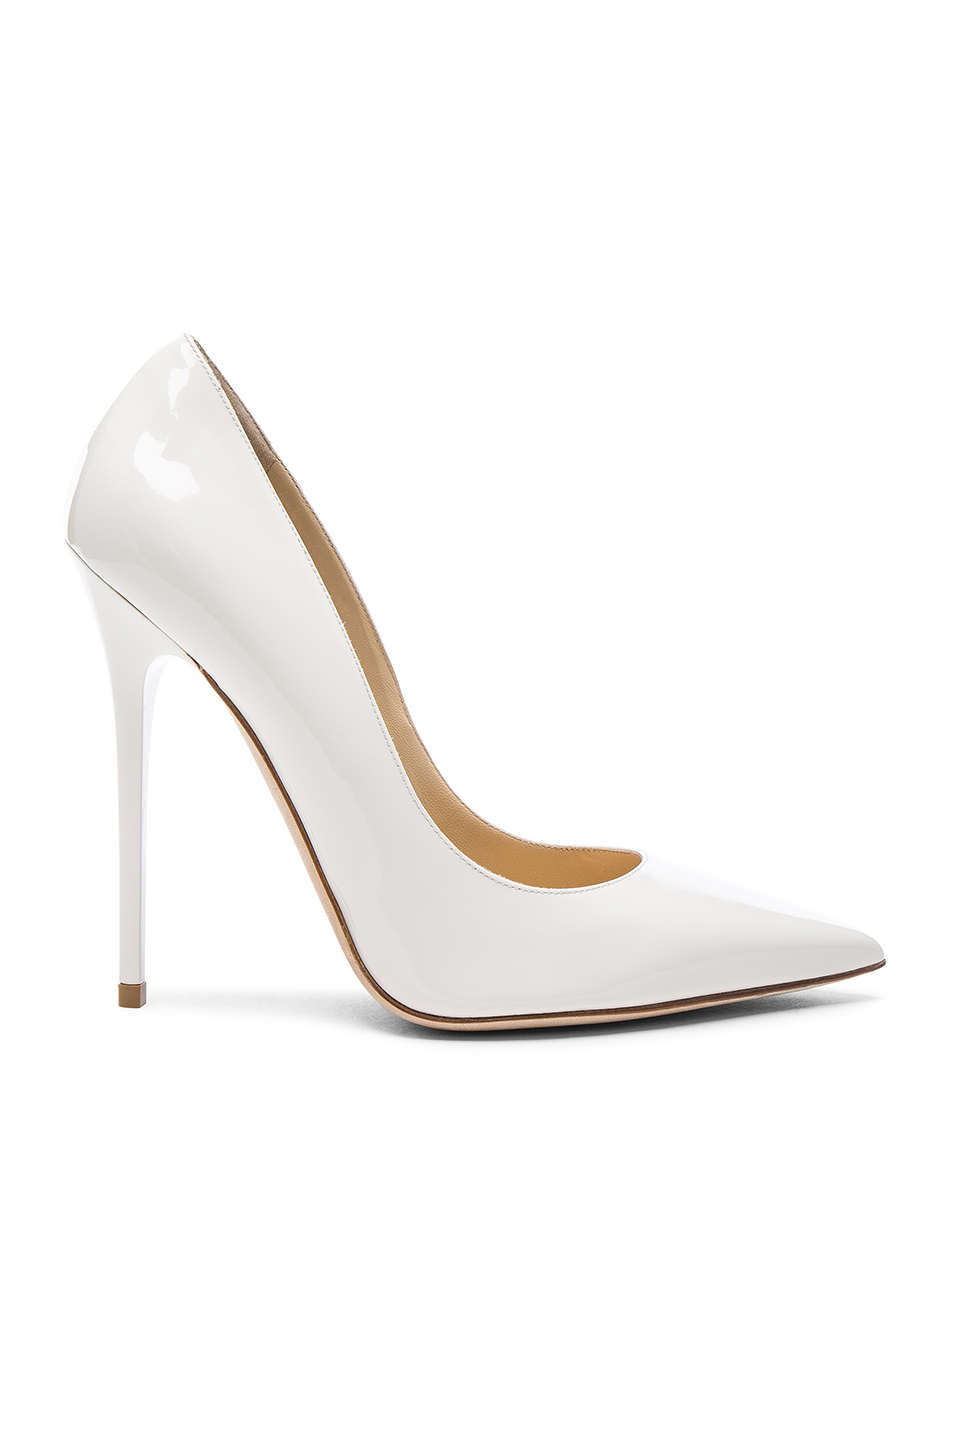 JIMMY CHOO Patent Leather Anouk Pumps In White. in Chalk